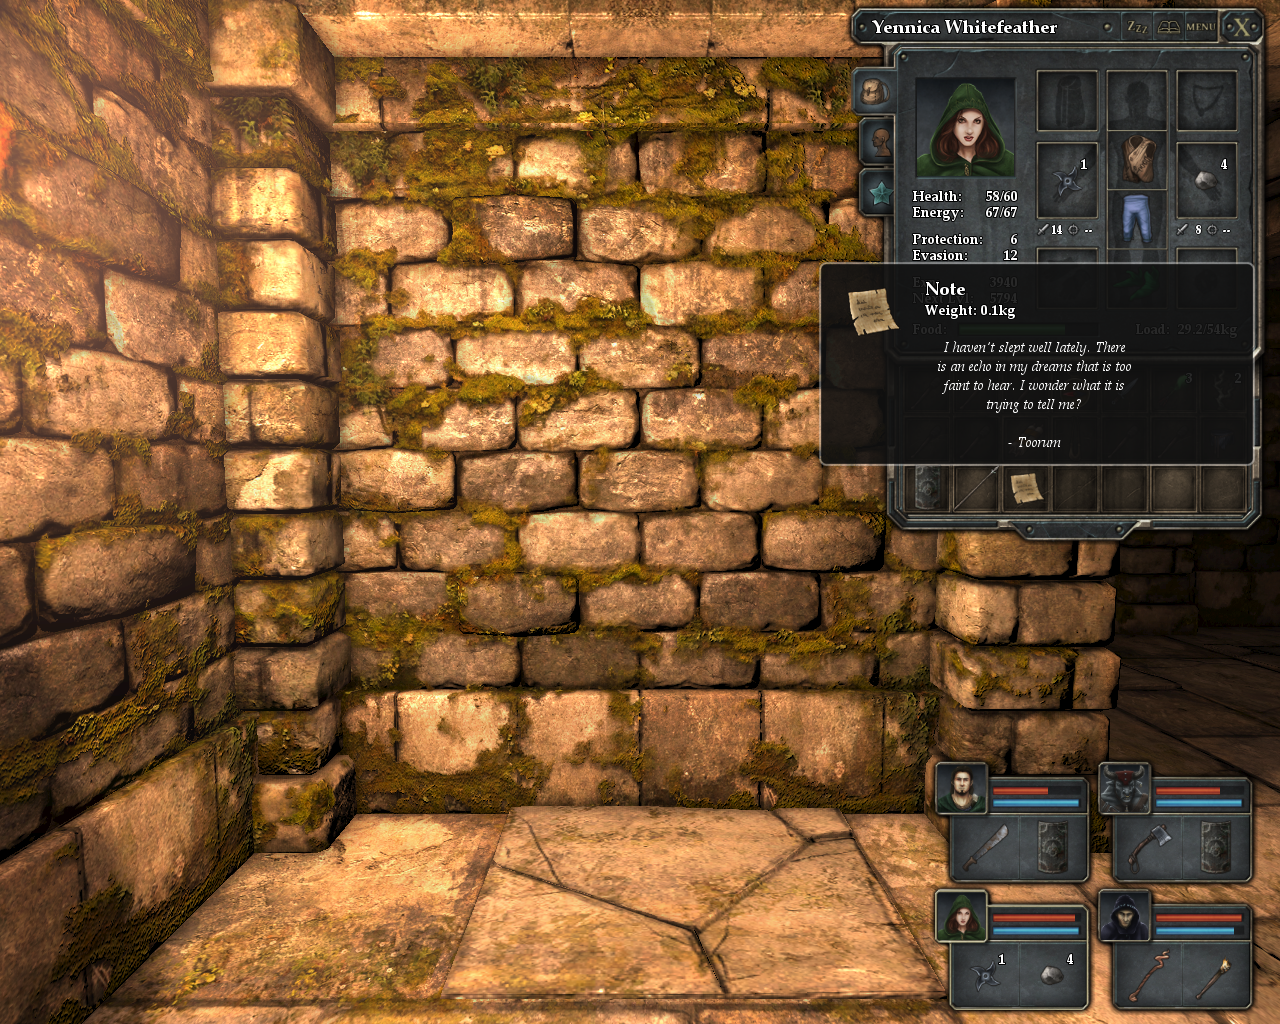 Legend of Grimrock Windows A note from Toorum who'll play a certain role in the game